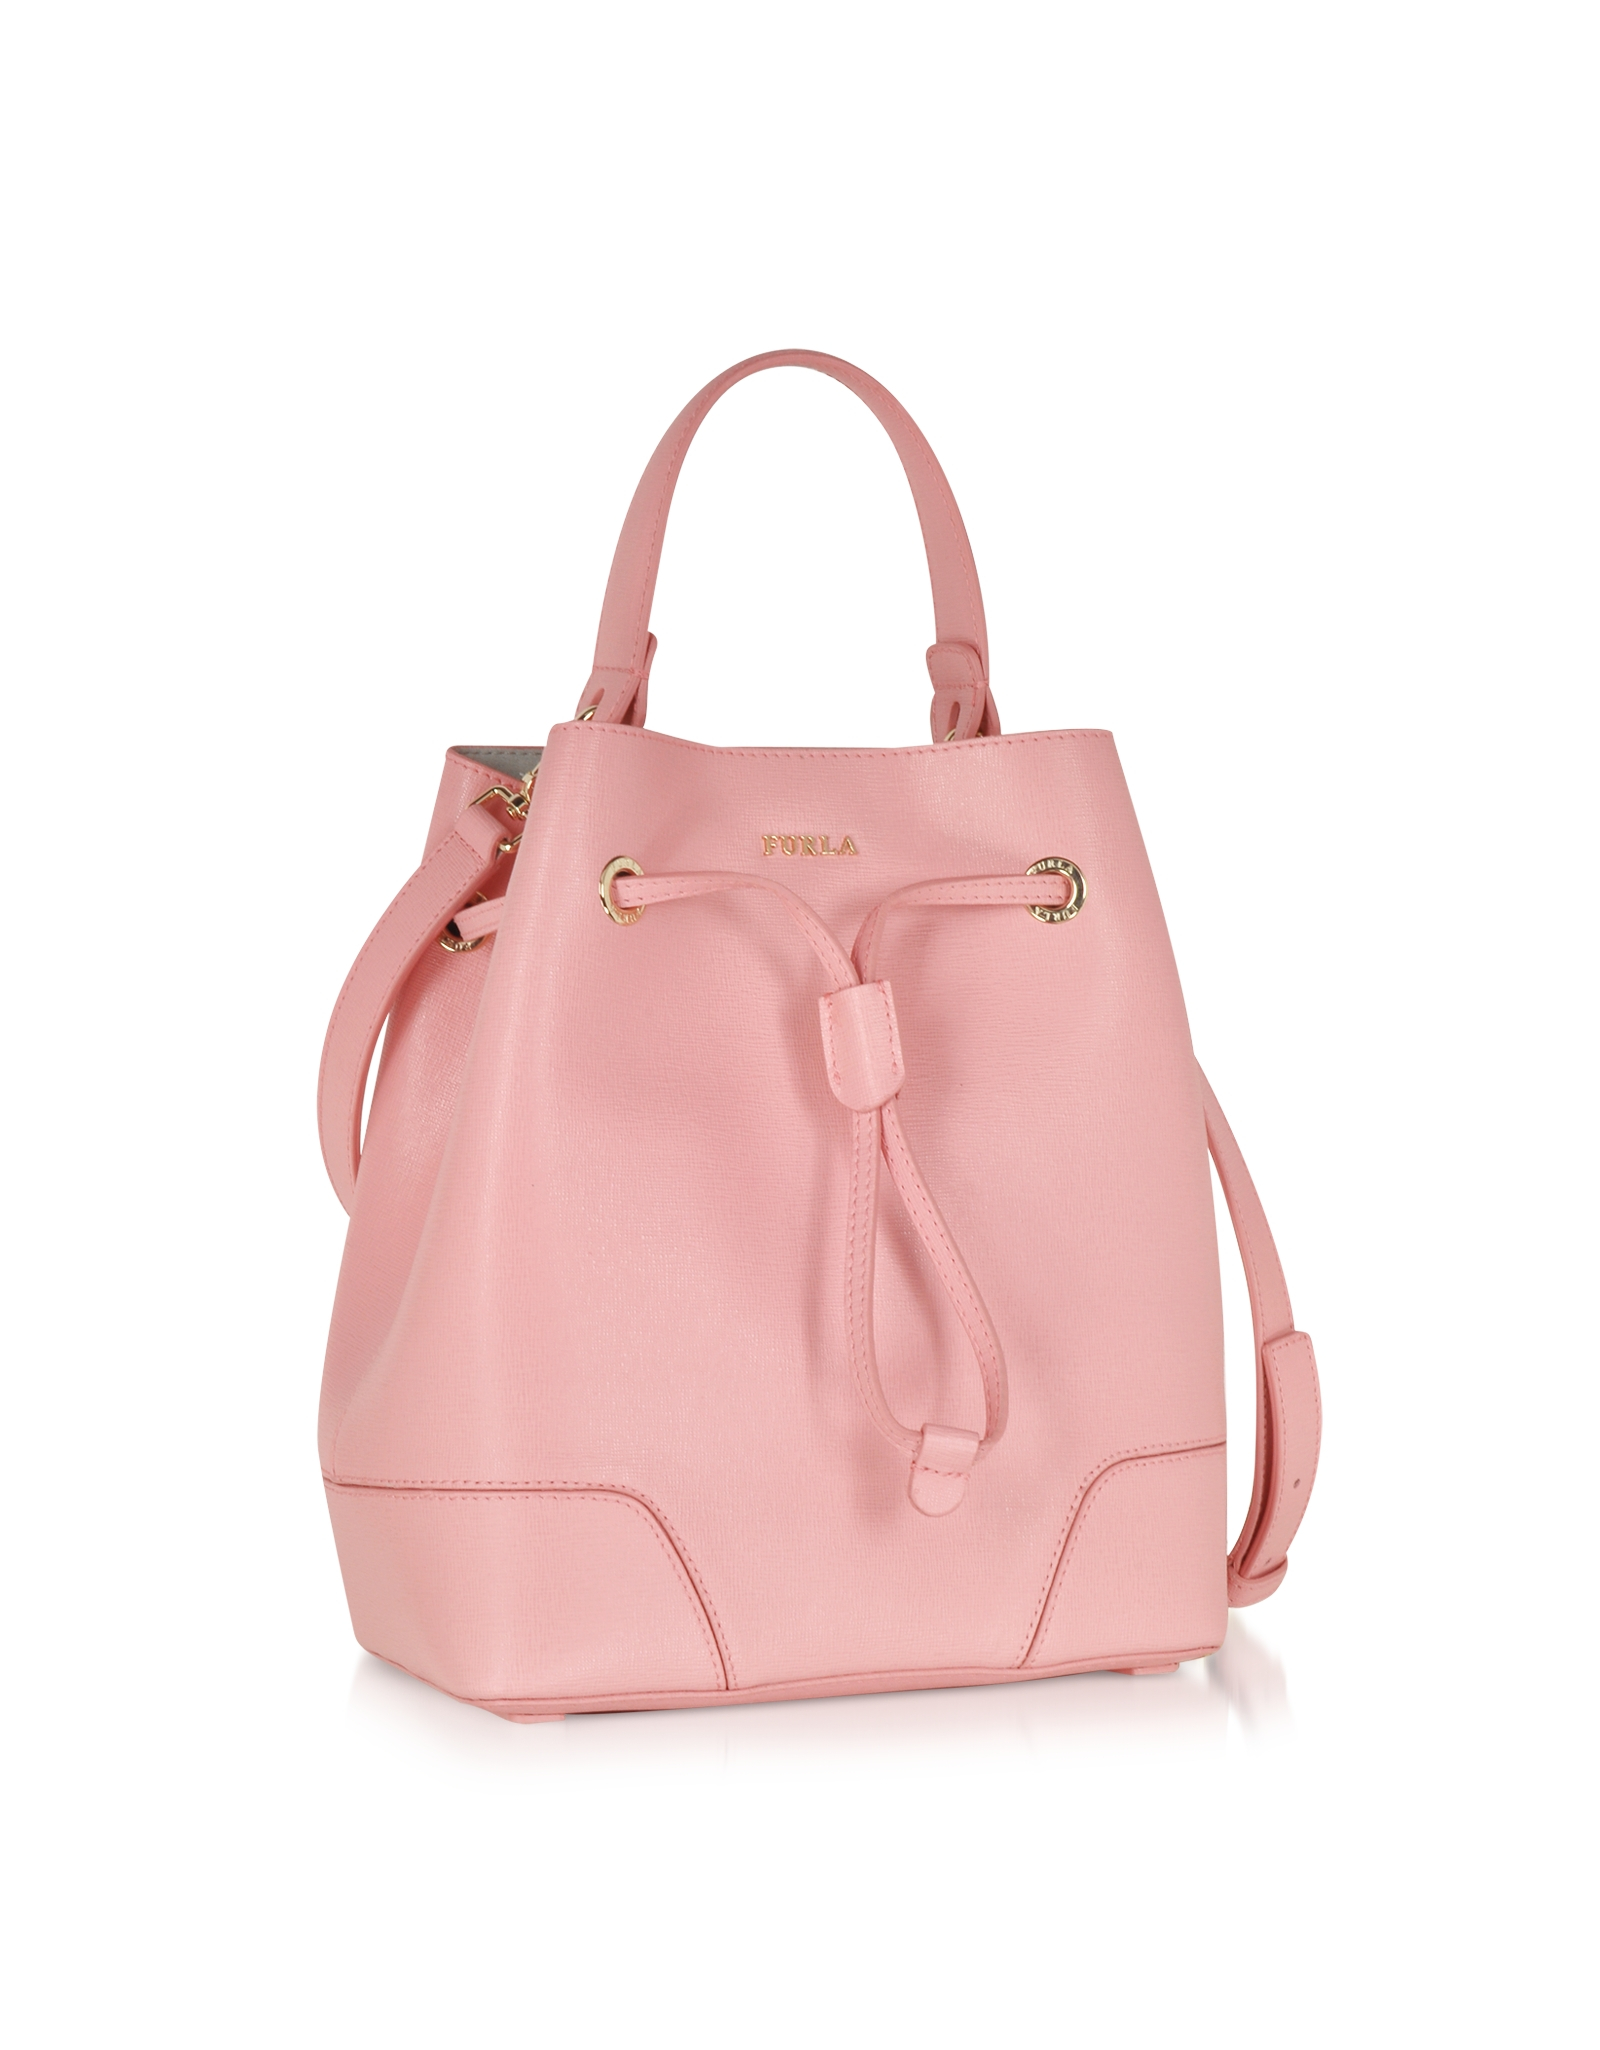 Lyst - Furla Stacy Winter Rose Leather Small Bucket Bag in Pink ffb7c597e9774